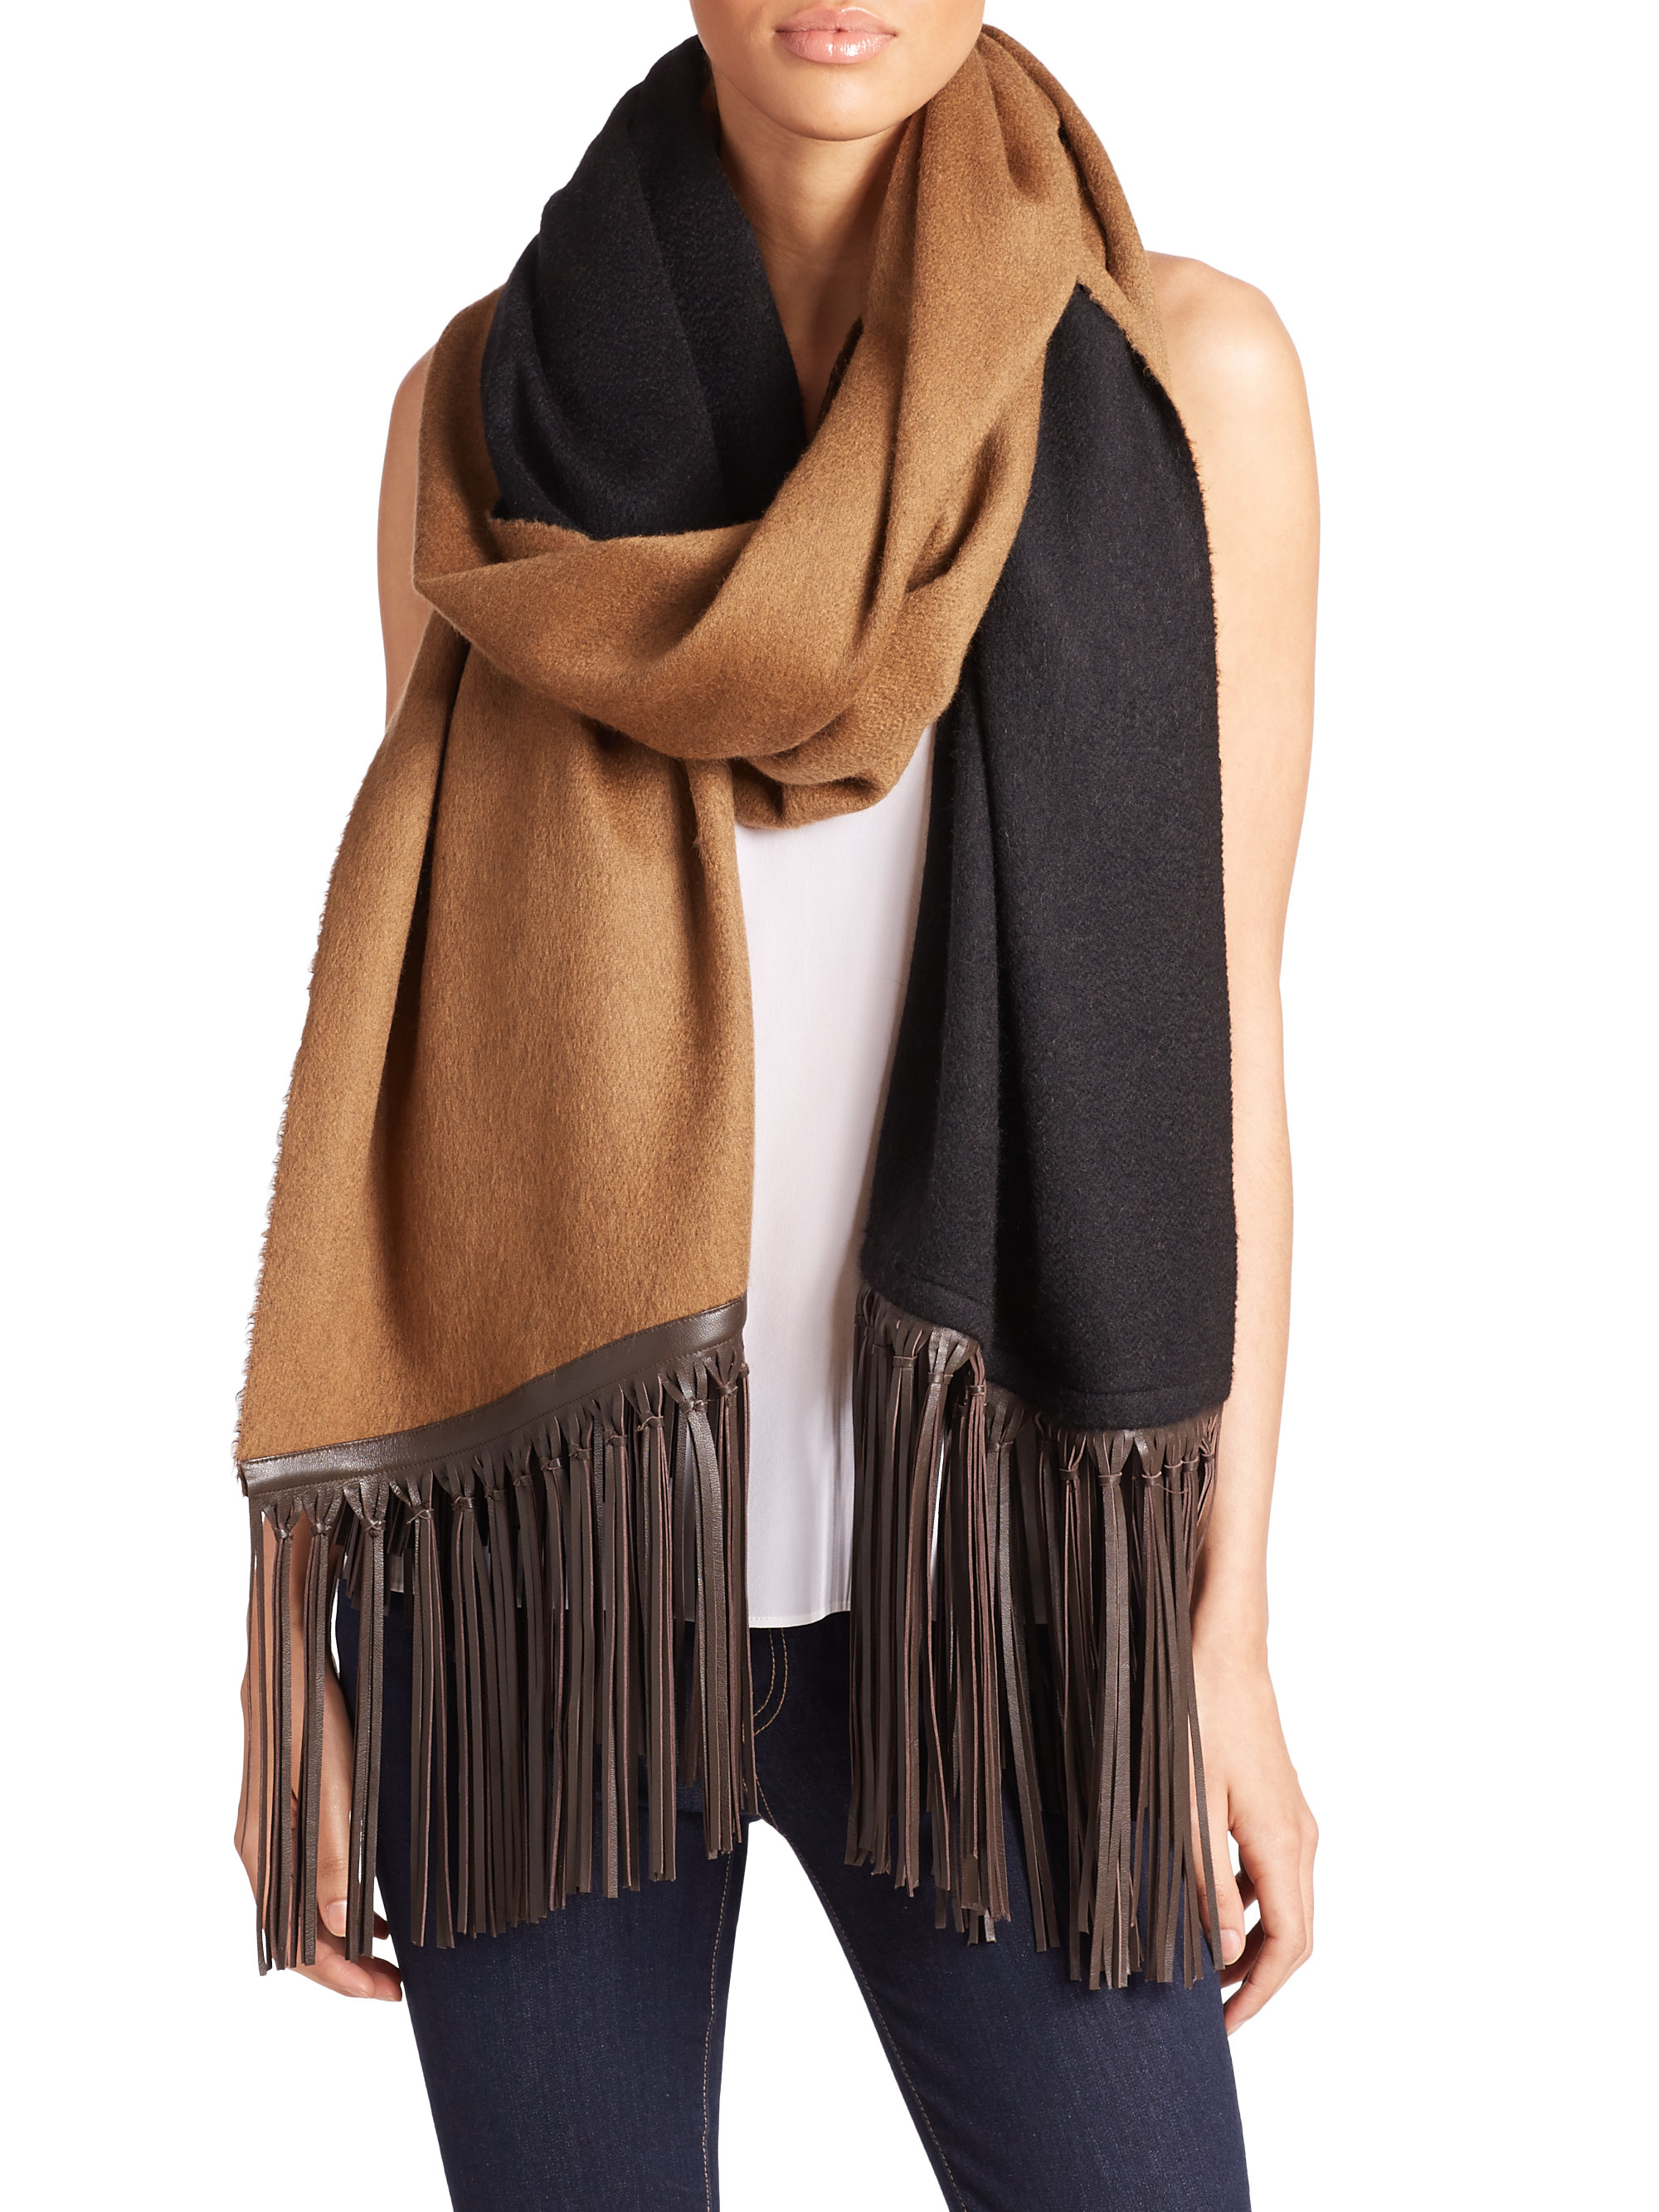 Barneys New York's black and white striped double-faced cashmere twill scarf is woven at the end with grey stripes. Designed with self-fringed ends, this ultra-soft style is crafted in an Italian mill that specializes in age-old weaving techniques.